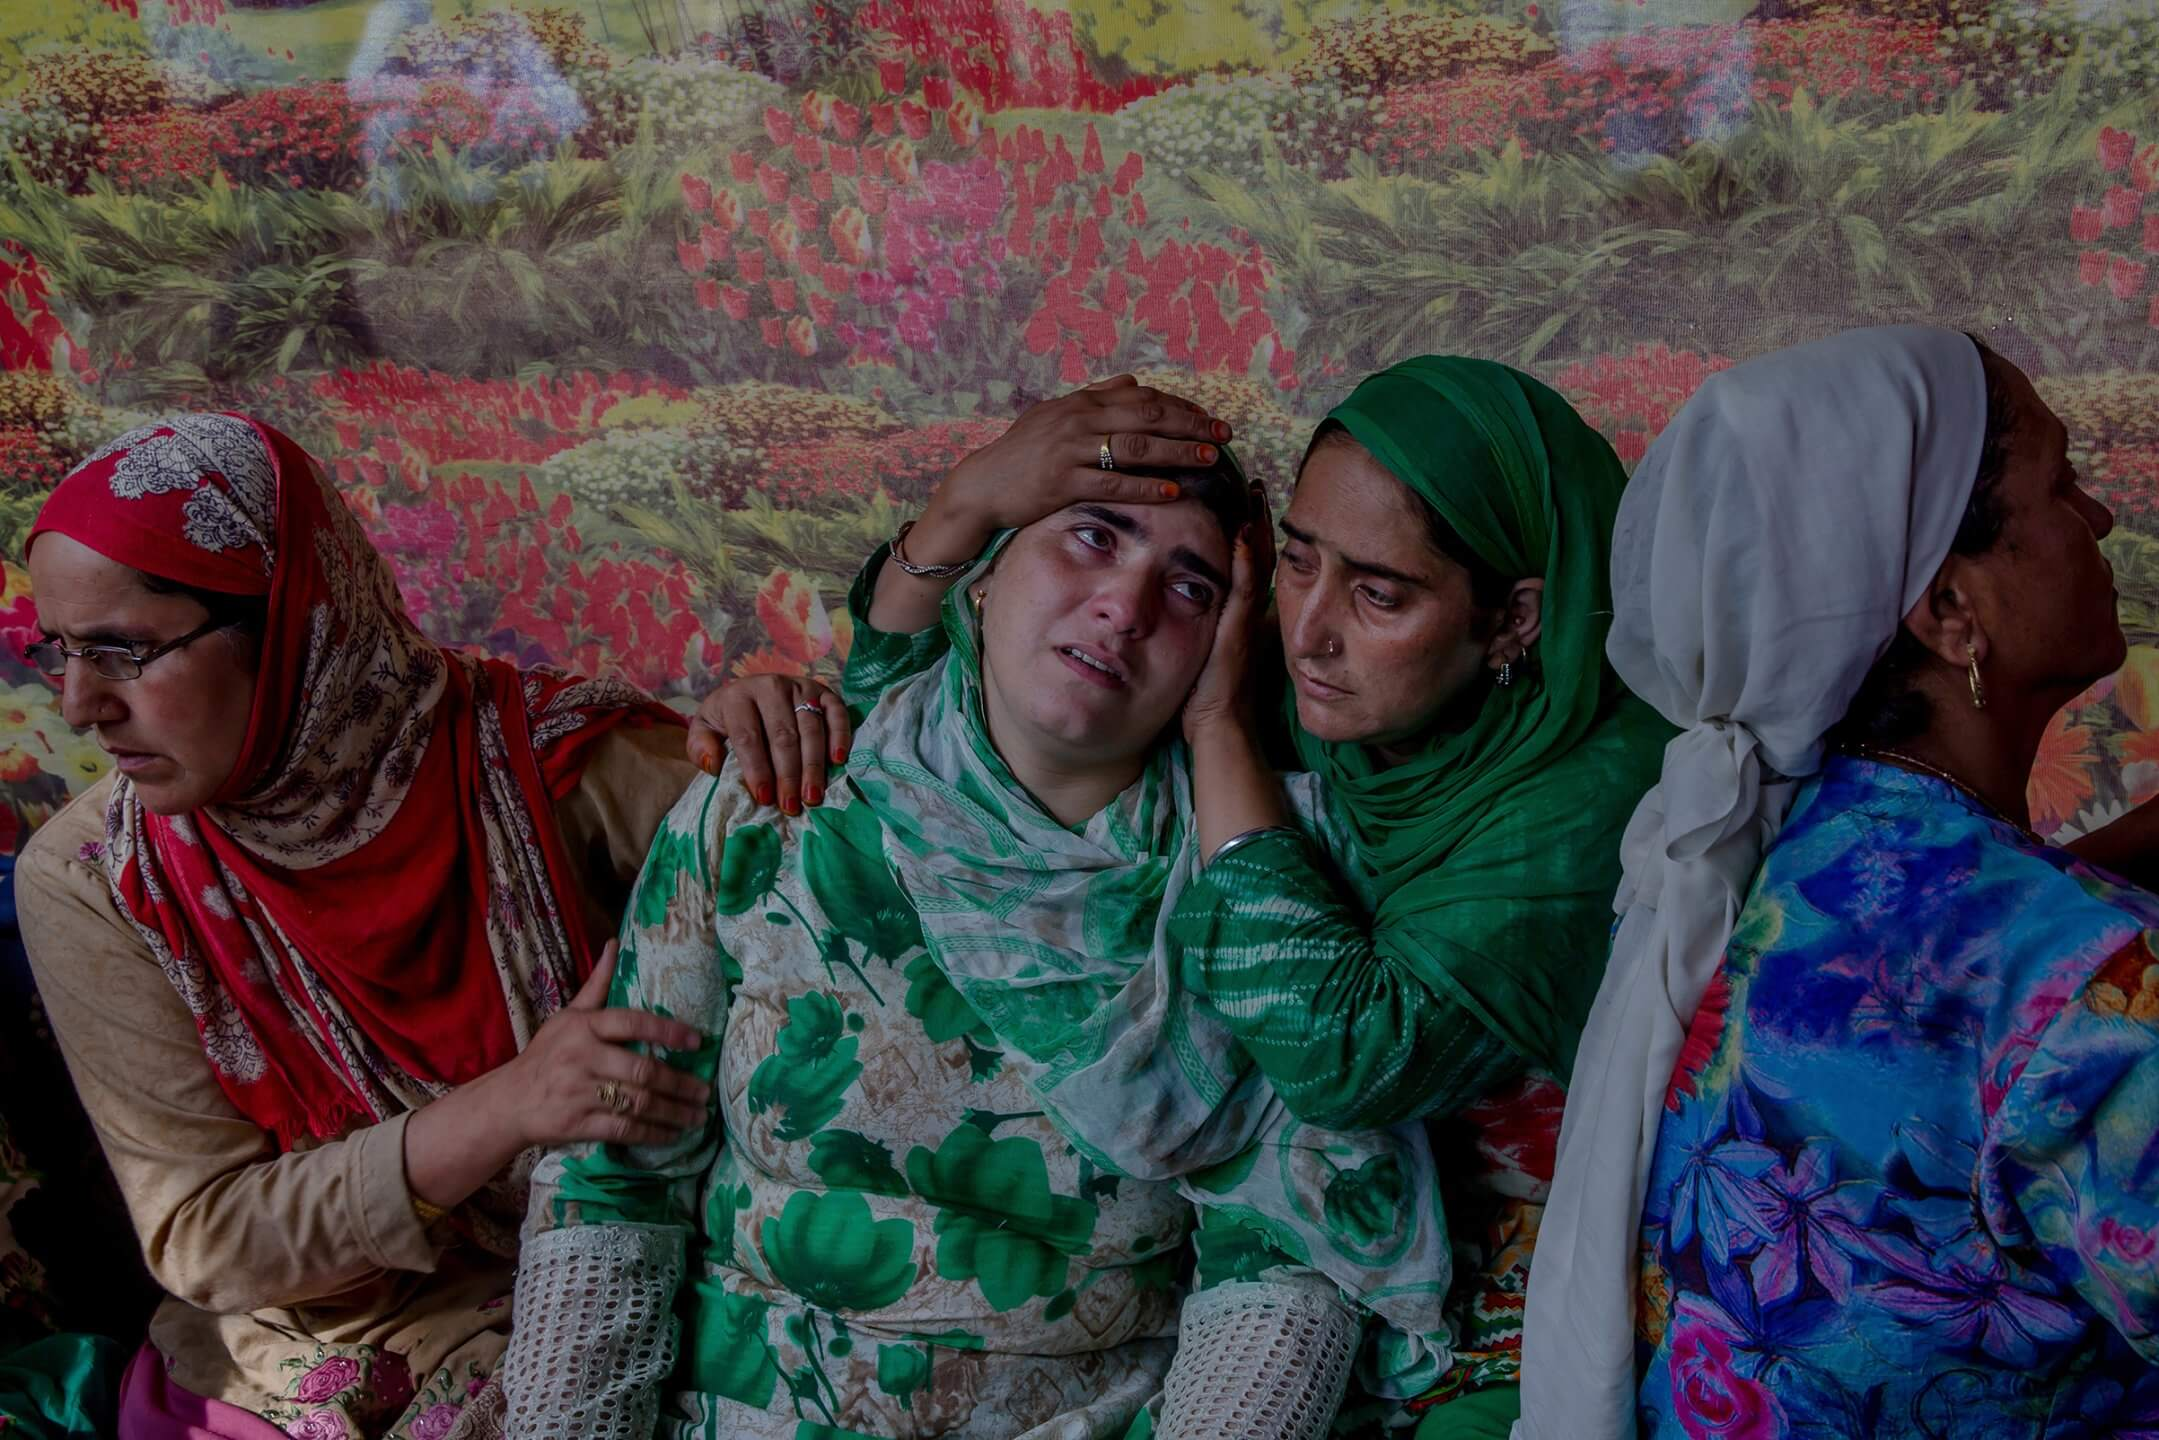 time dar yasin kashmir unrest top 100 photos 2017 TOP 100 PHOTOS From the Editors of TIME